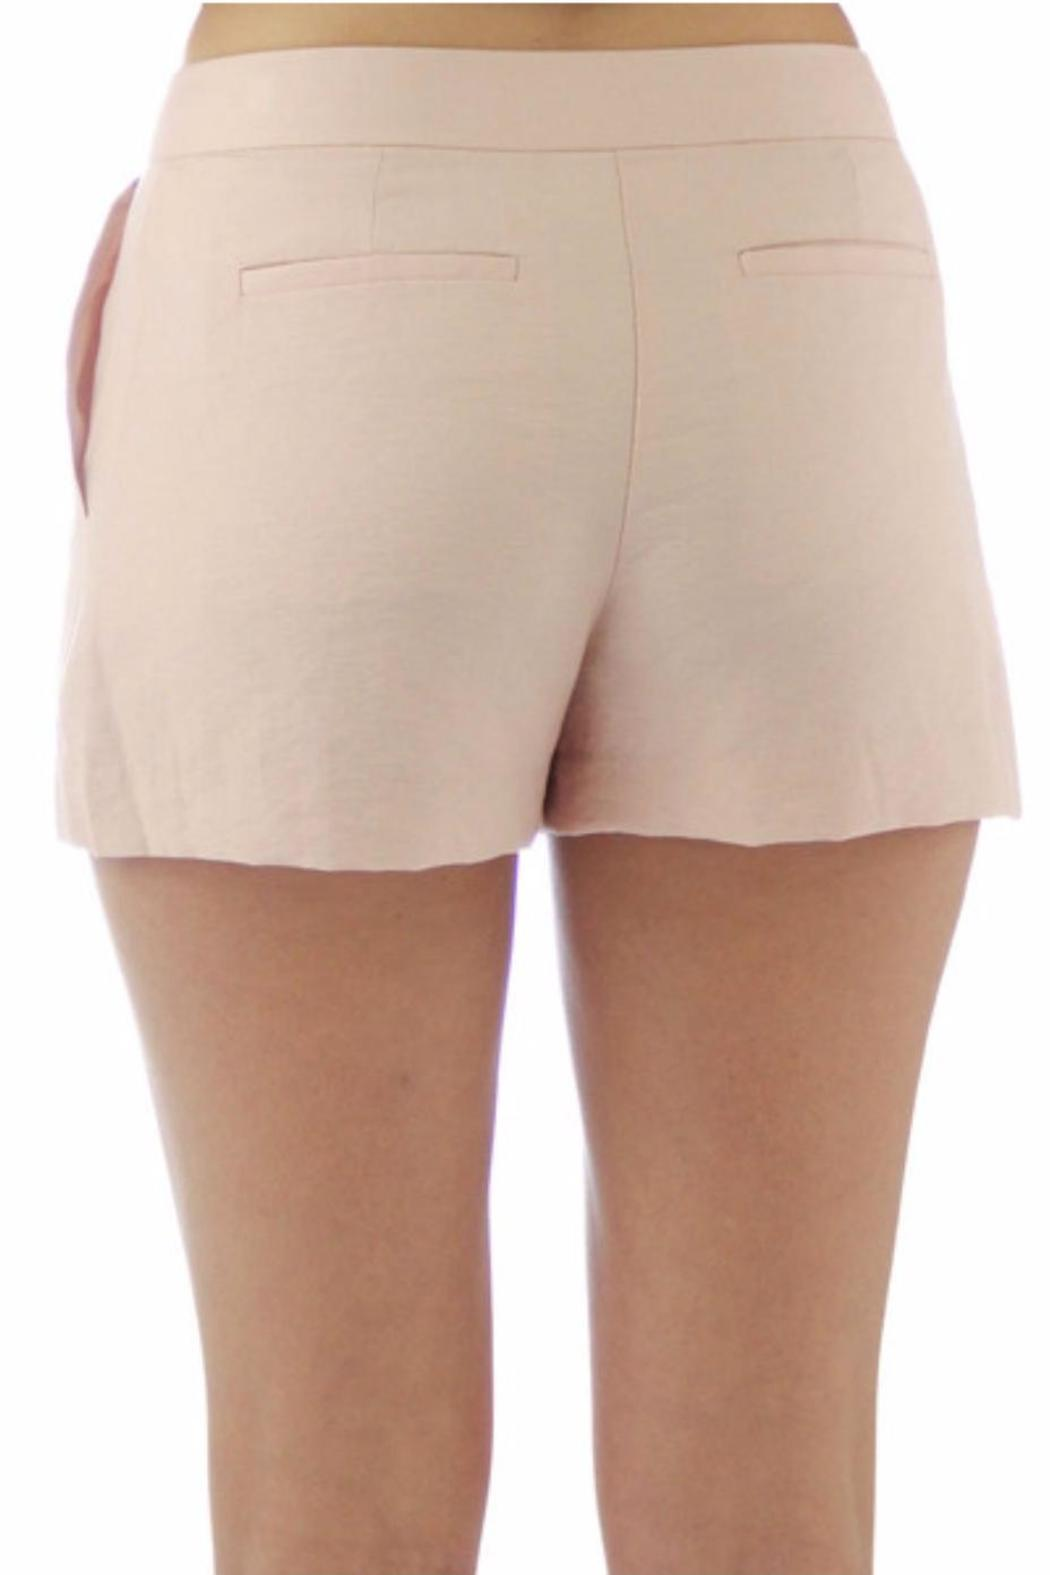 BCBGeneration Pink Tailored Shorts - Front Full Image